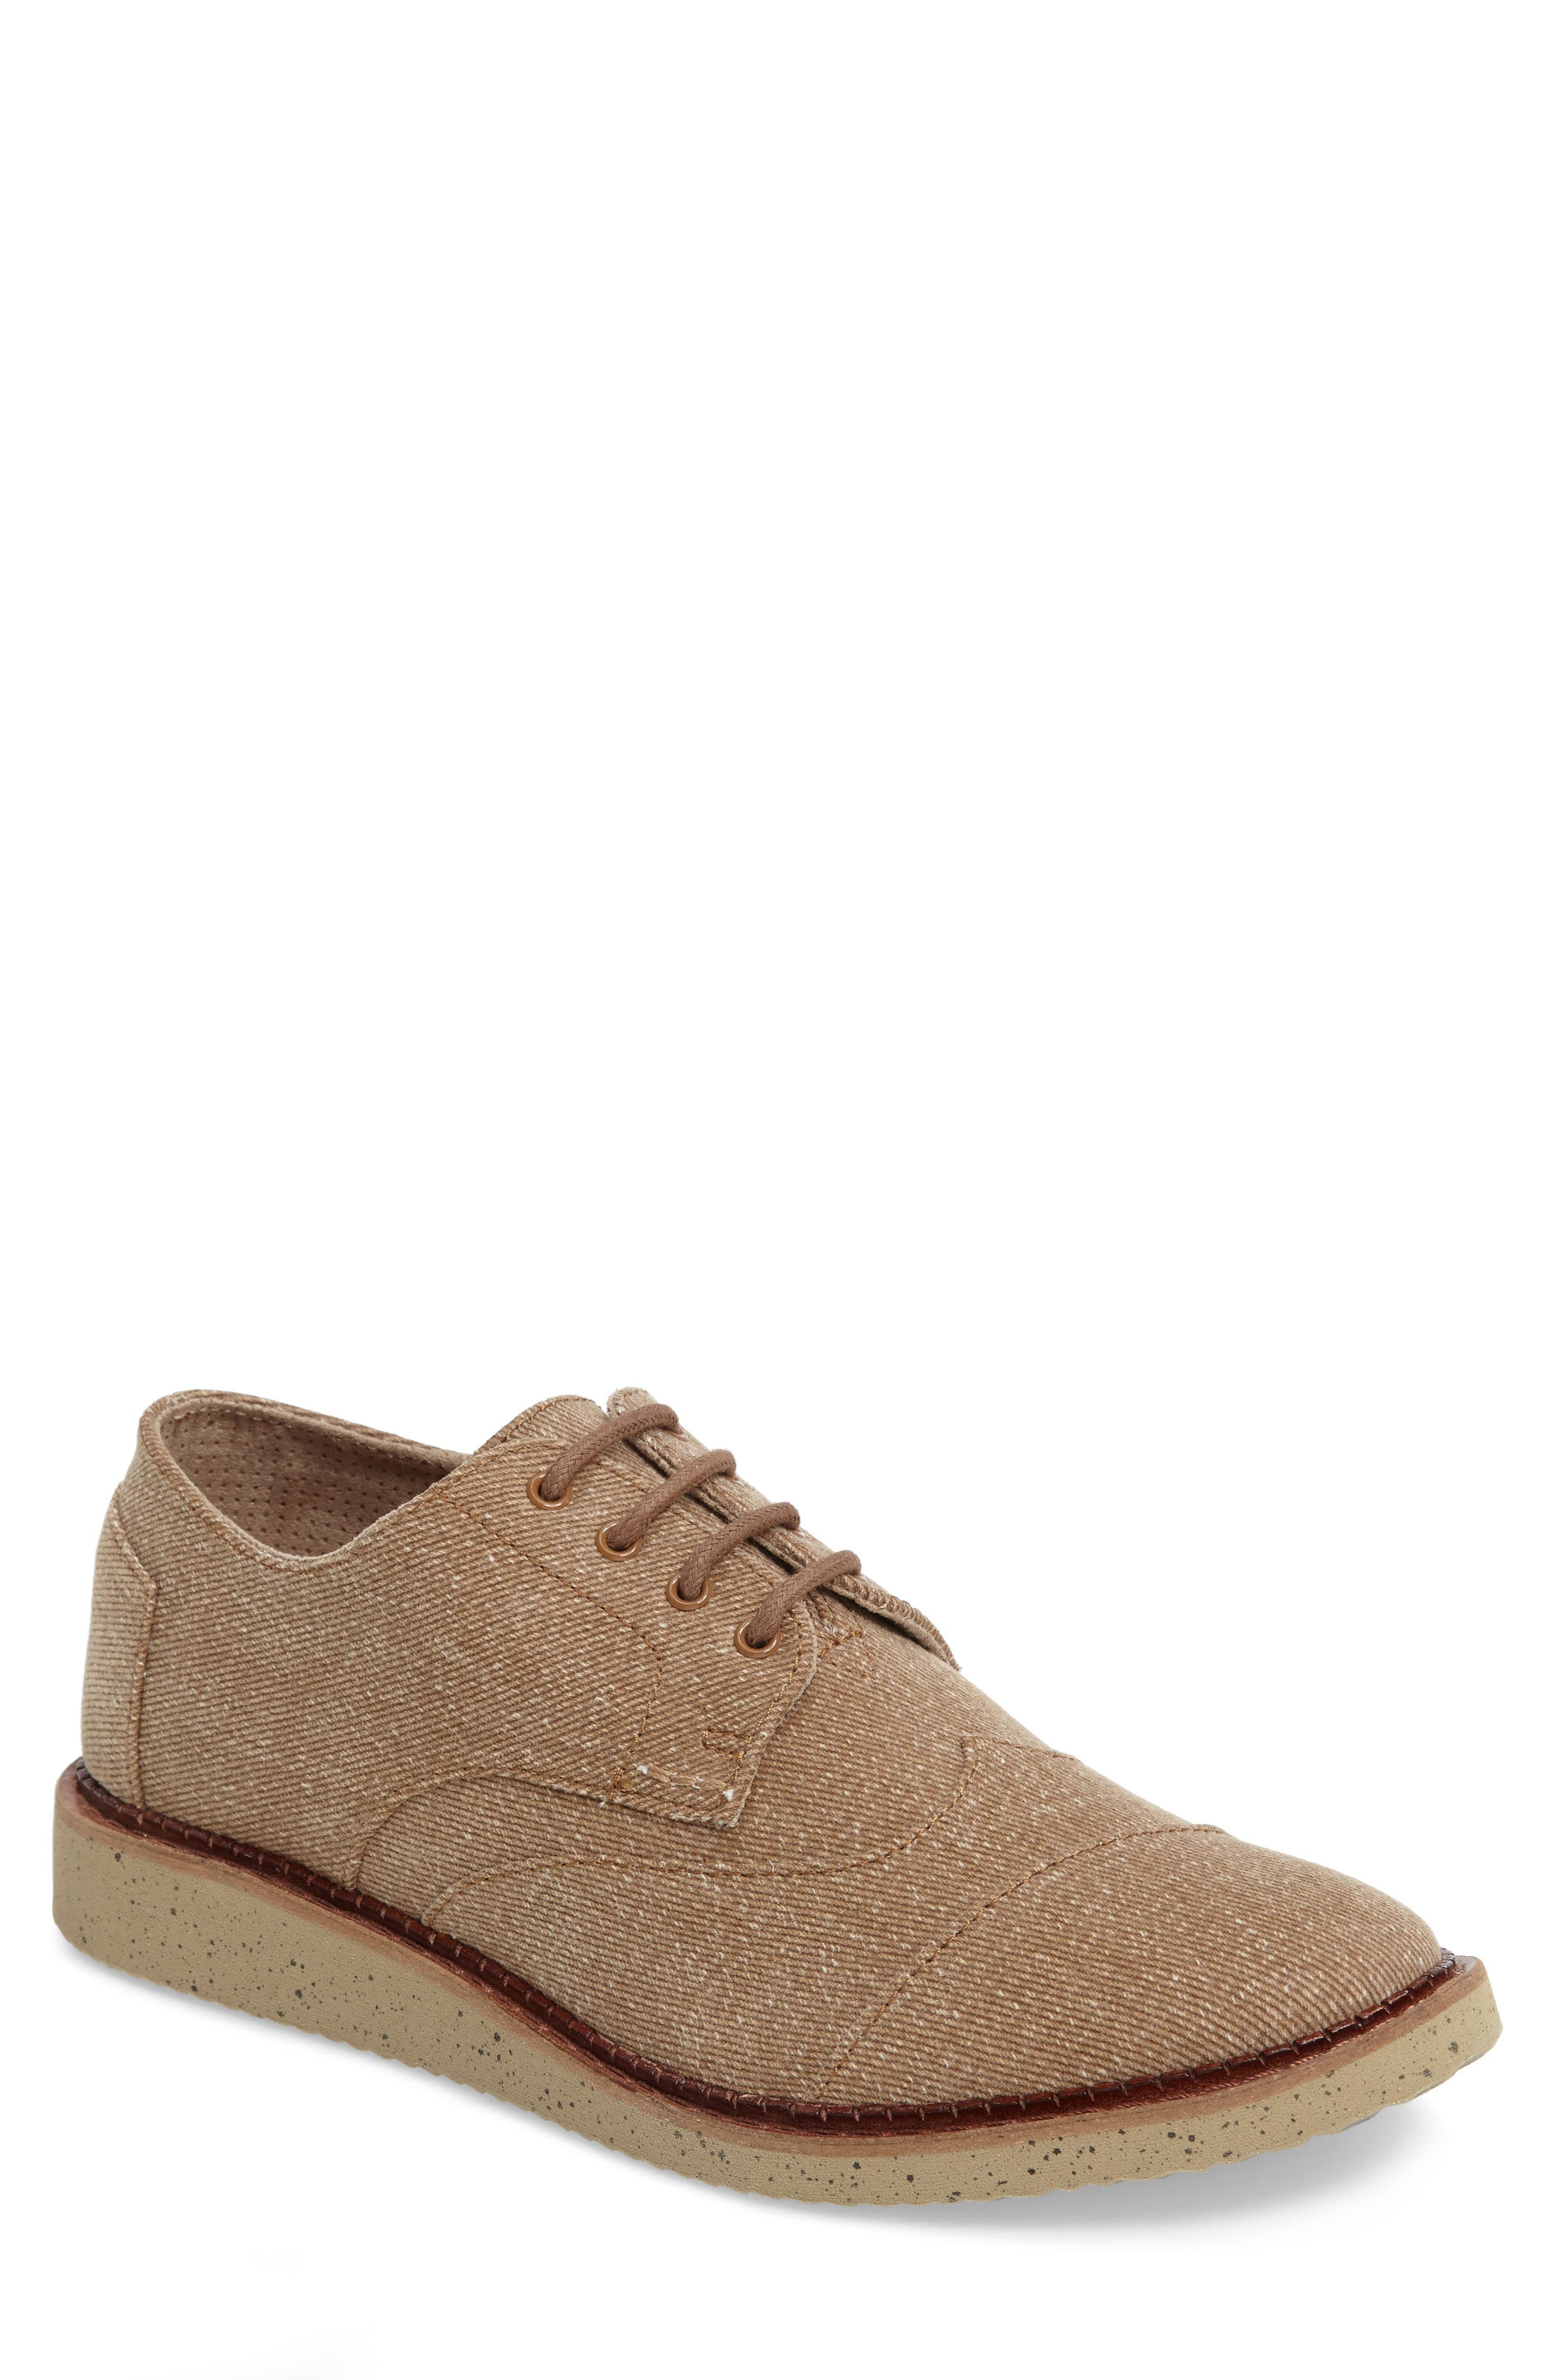 'Classic Brogue' Cotton Twill Derby,                             Main thumbnail 11, color,